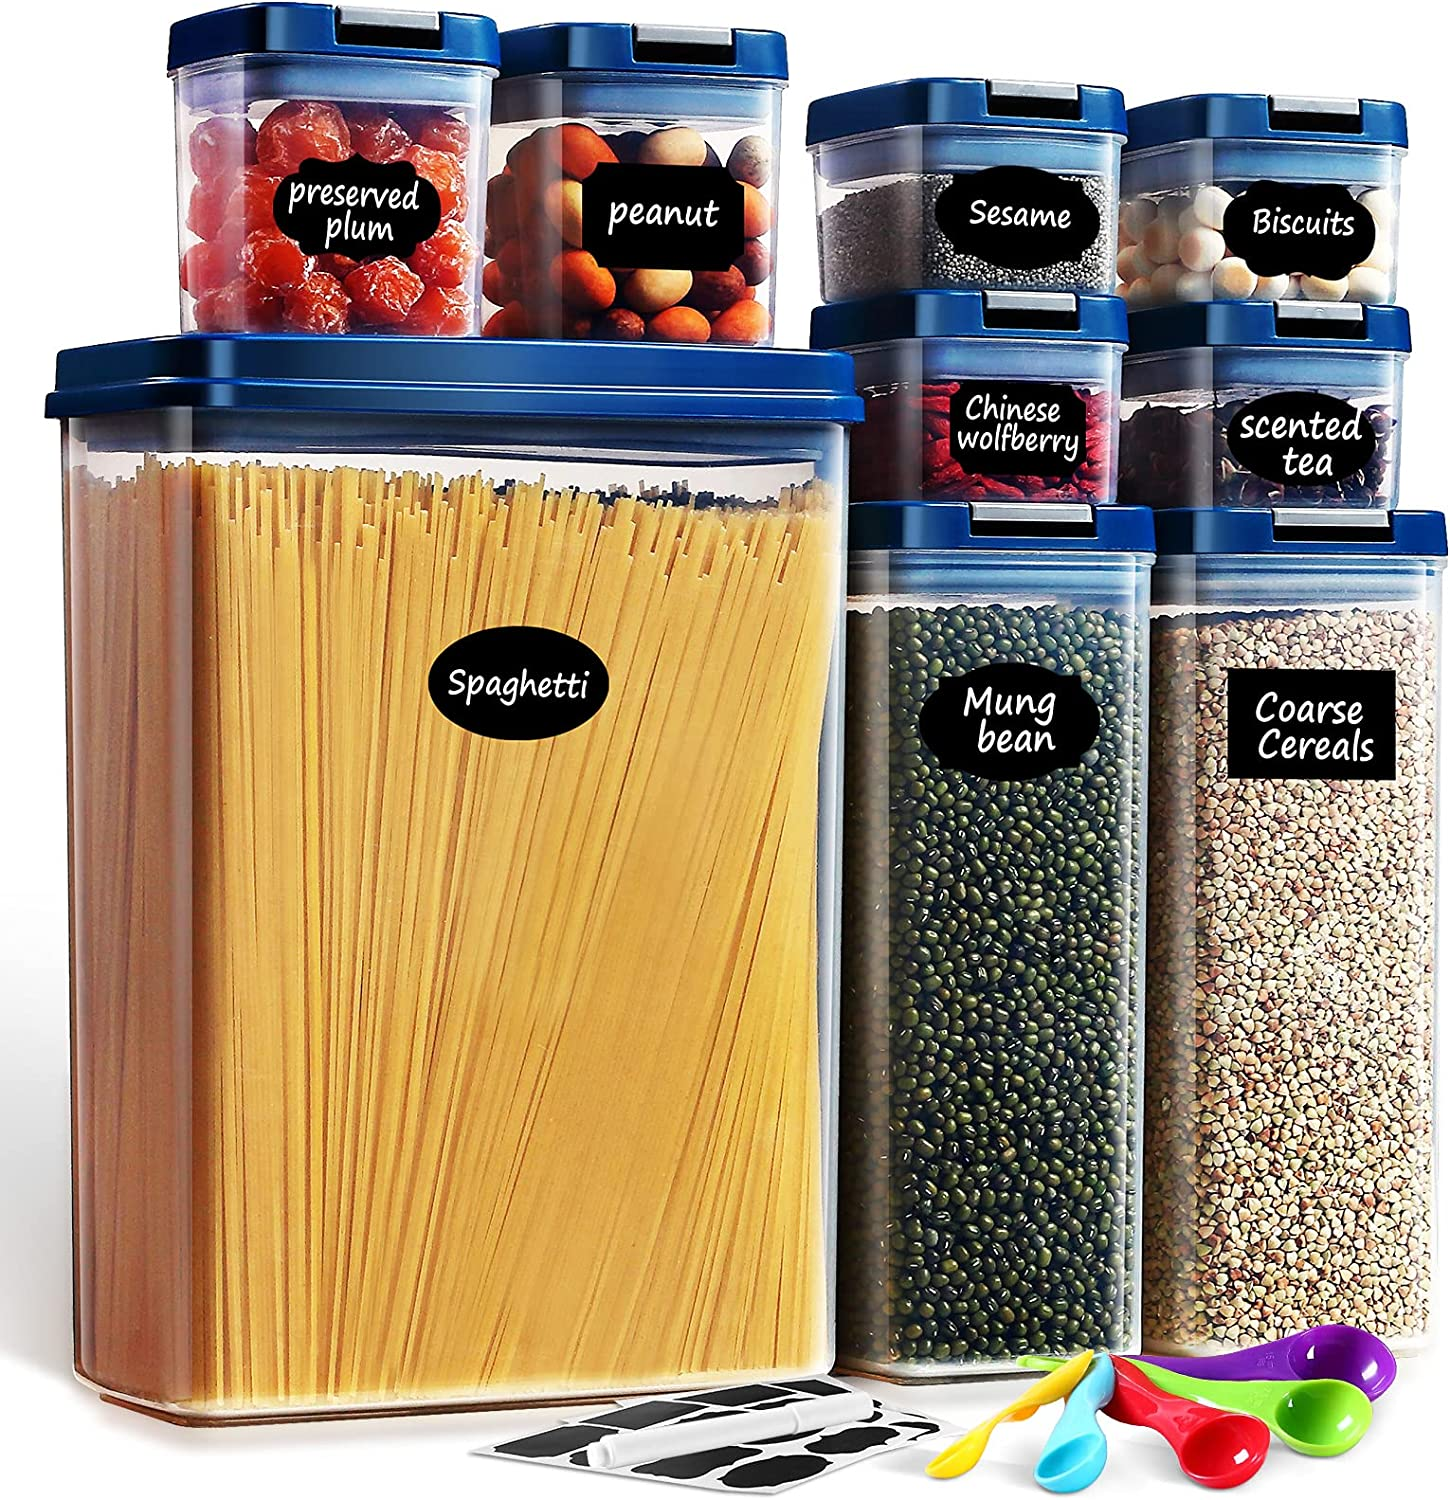 Lockcoo Airtight Food Storage Containers Set, 9PC BPA Free Leakproof Plastic Storage Containers with Lids for Kitchen Pantry Organization, Spaghetti Cereal Flour- Include 24 Labels, Spoon Set& Marker